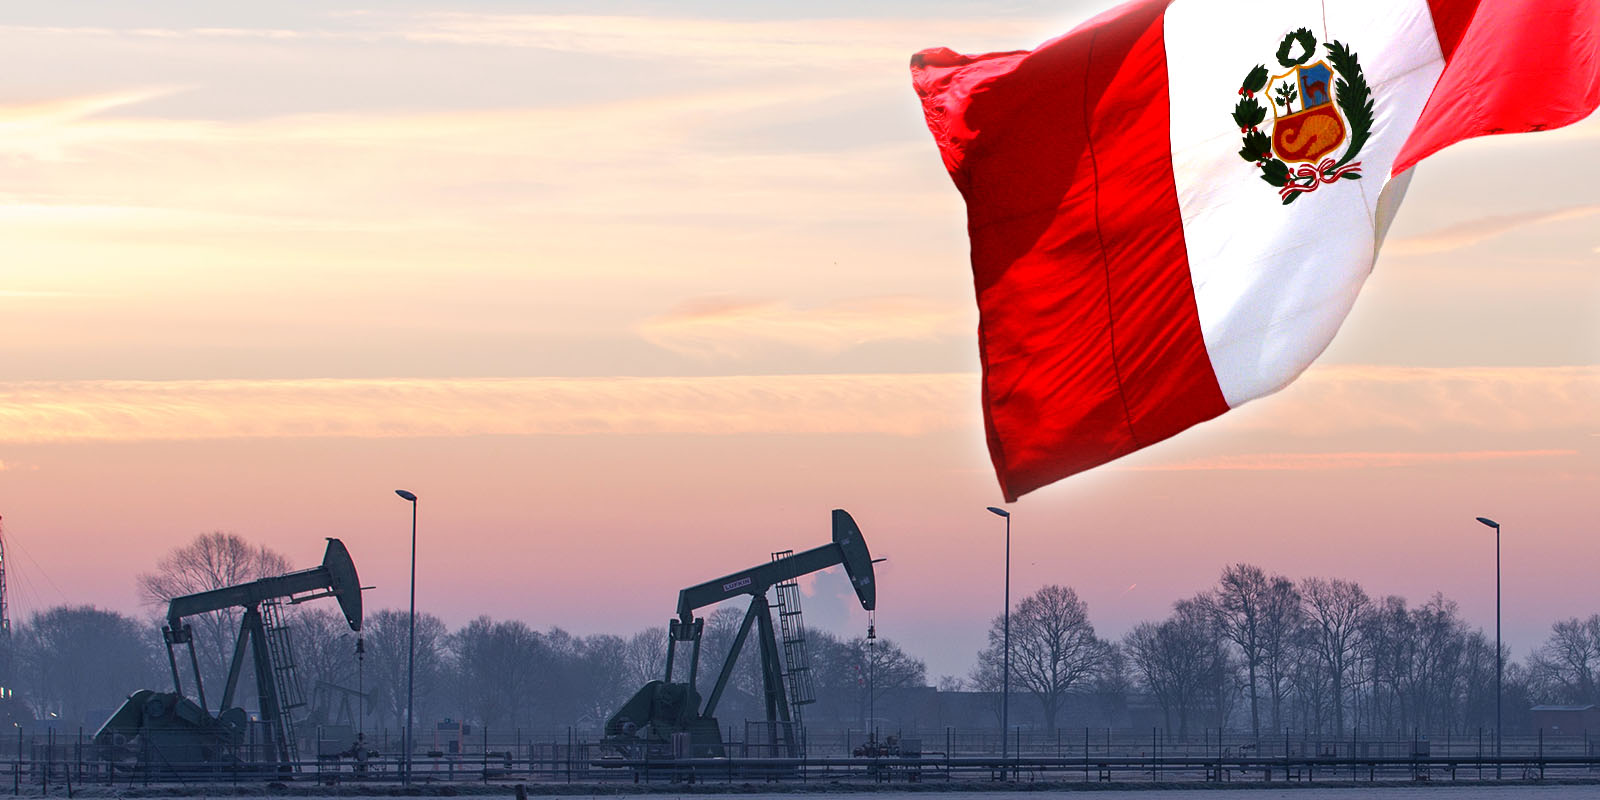 'Not the moment' for hydrocarbons reform in Peru